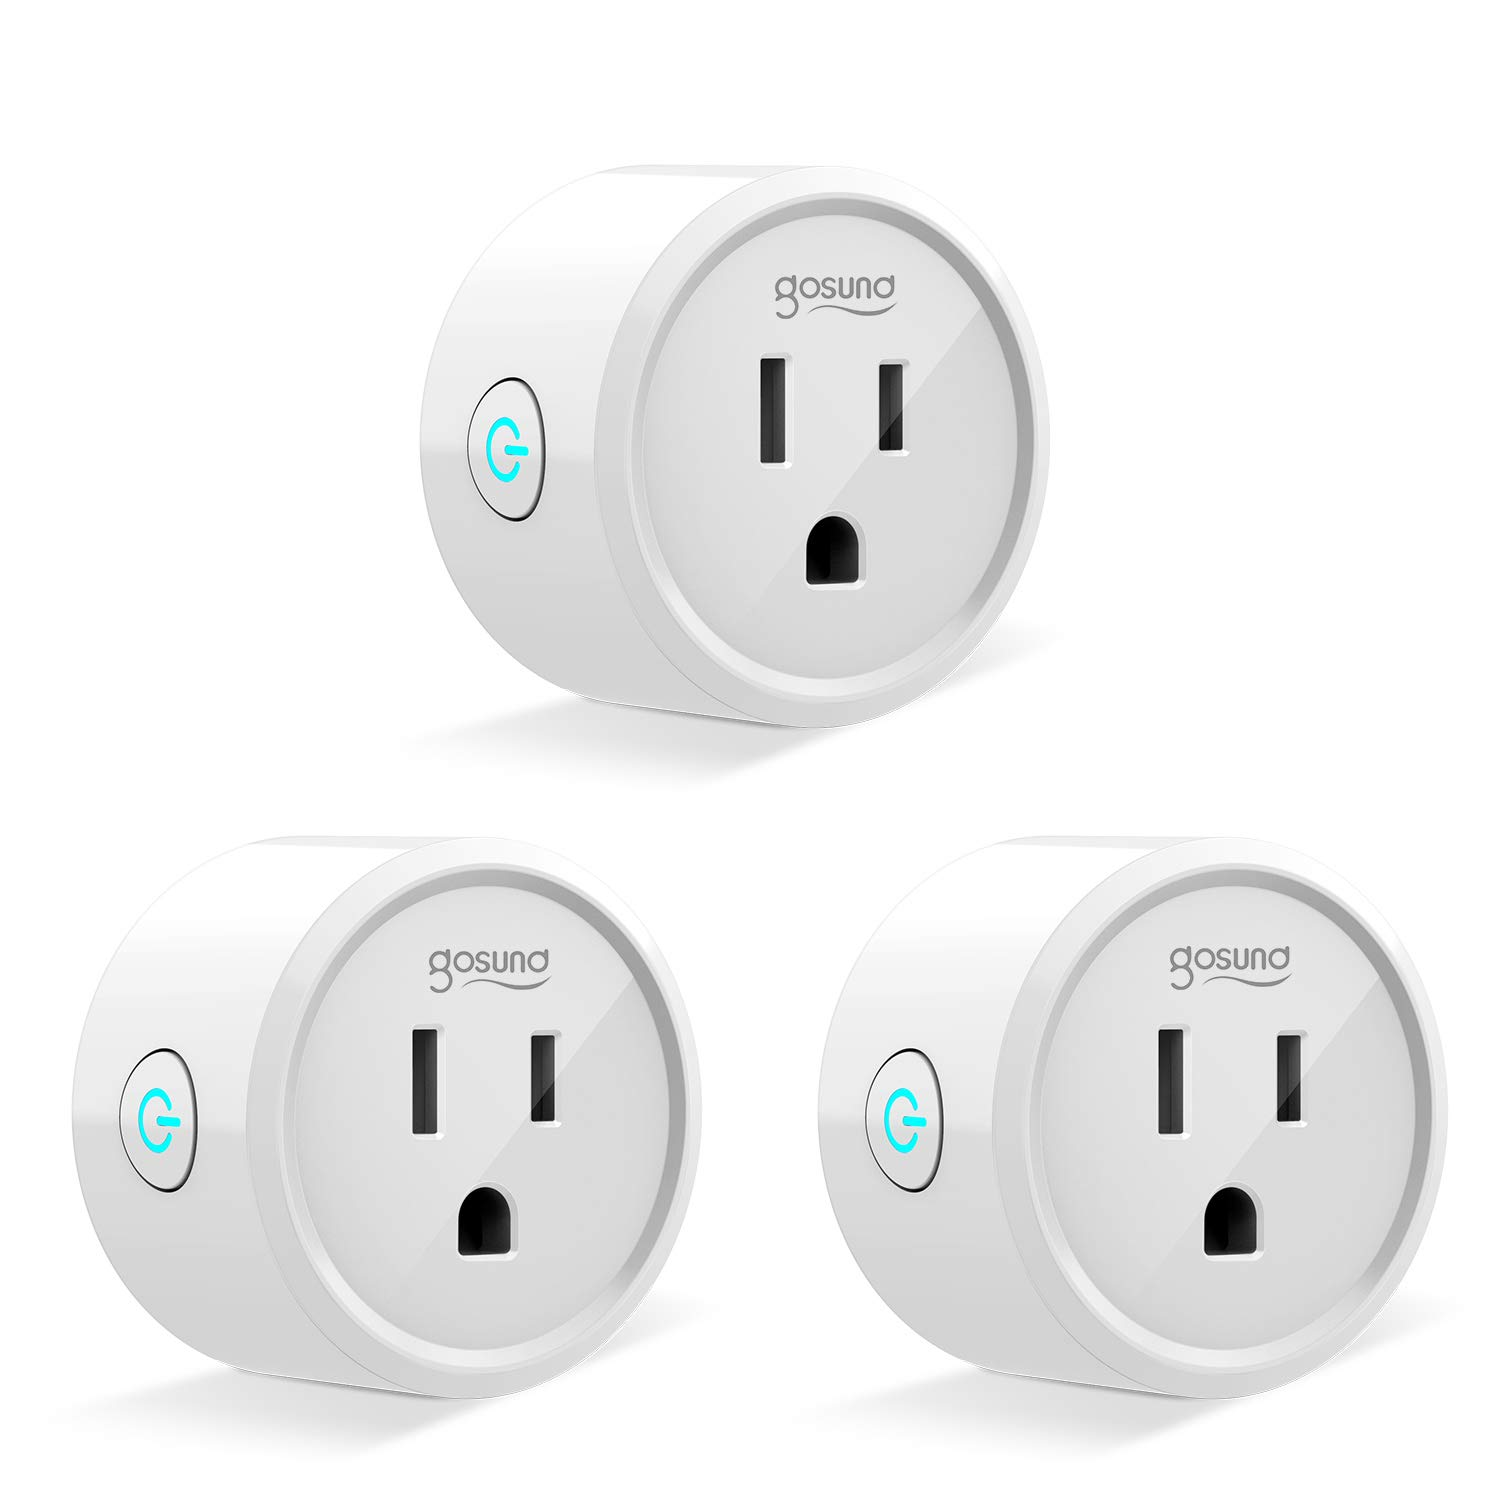 Gosund Mini Smart Plug 3 Pack, Wifi Enabled Outlet Socket with Timing Function, Works with Amazon Alexa, Google Assistant and IFTTT, Remote Control by Phone, FCC and ETL Certified